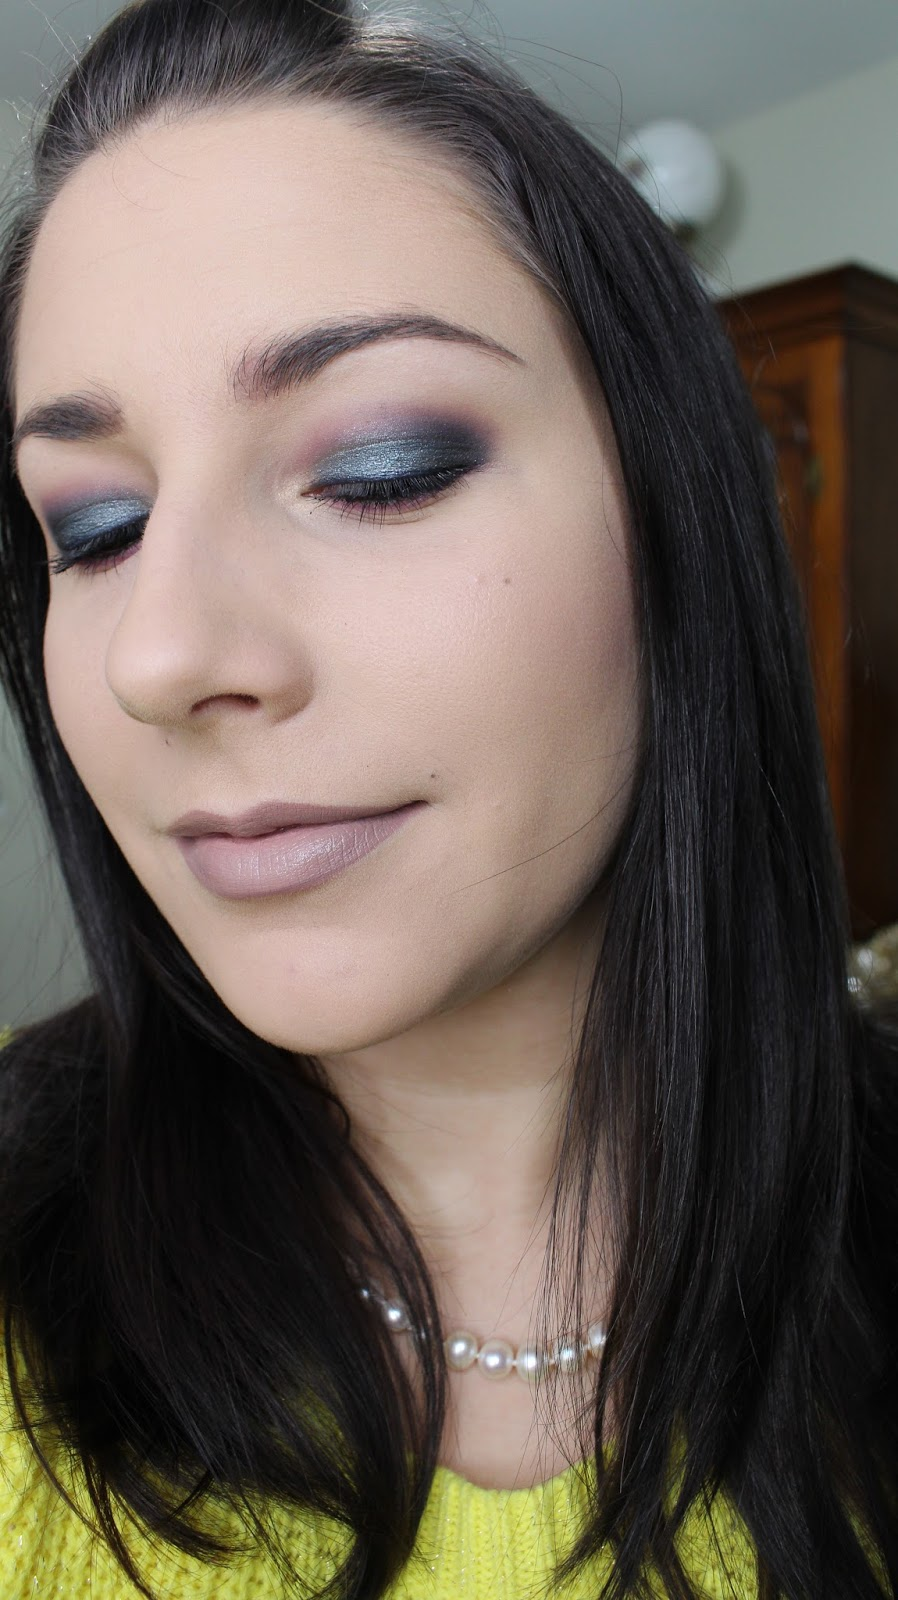 Lainamarie91: Makeup Of The Day